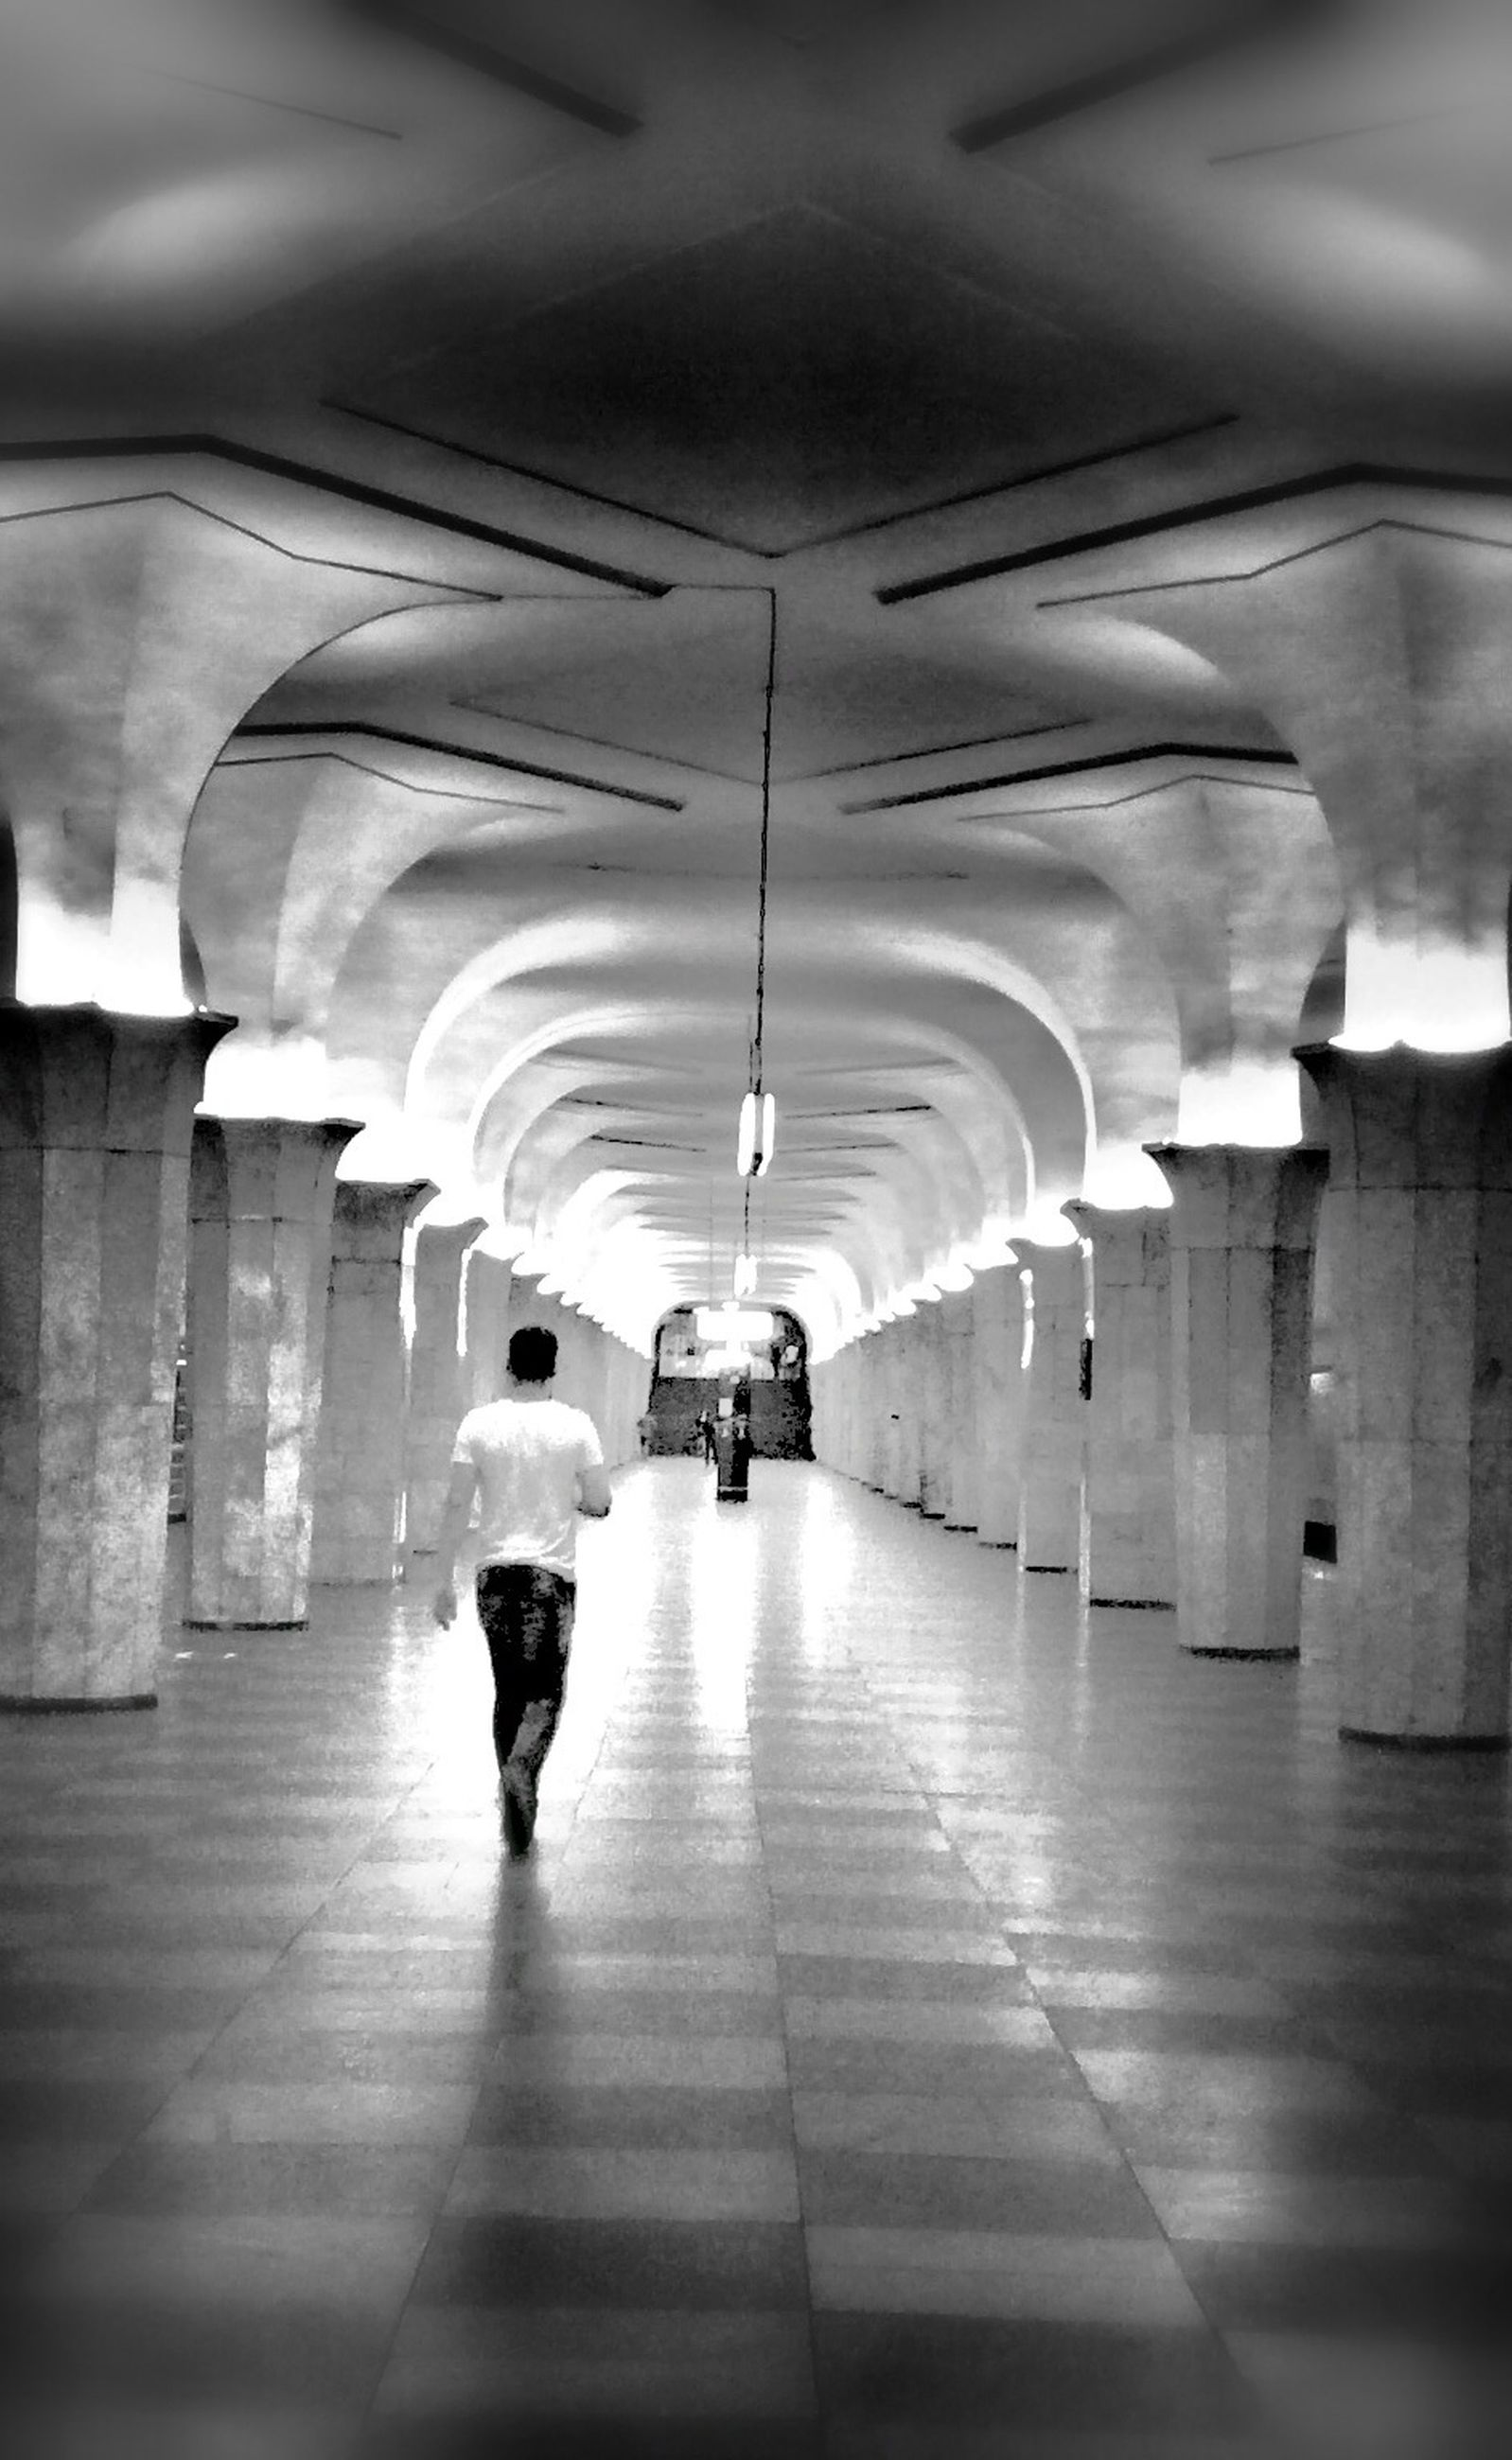 architecture, built structure, ceiling, walking, illuminated, indoors, the way forward, lighting equipment, rear view, real people, arch, architectural column, full length, one person, day, people